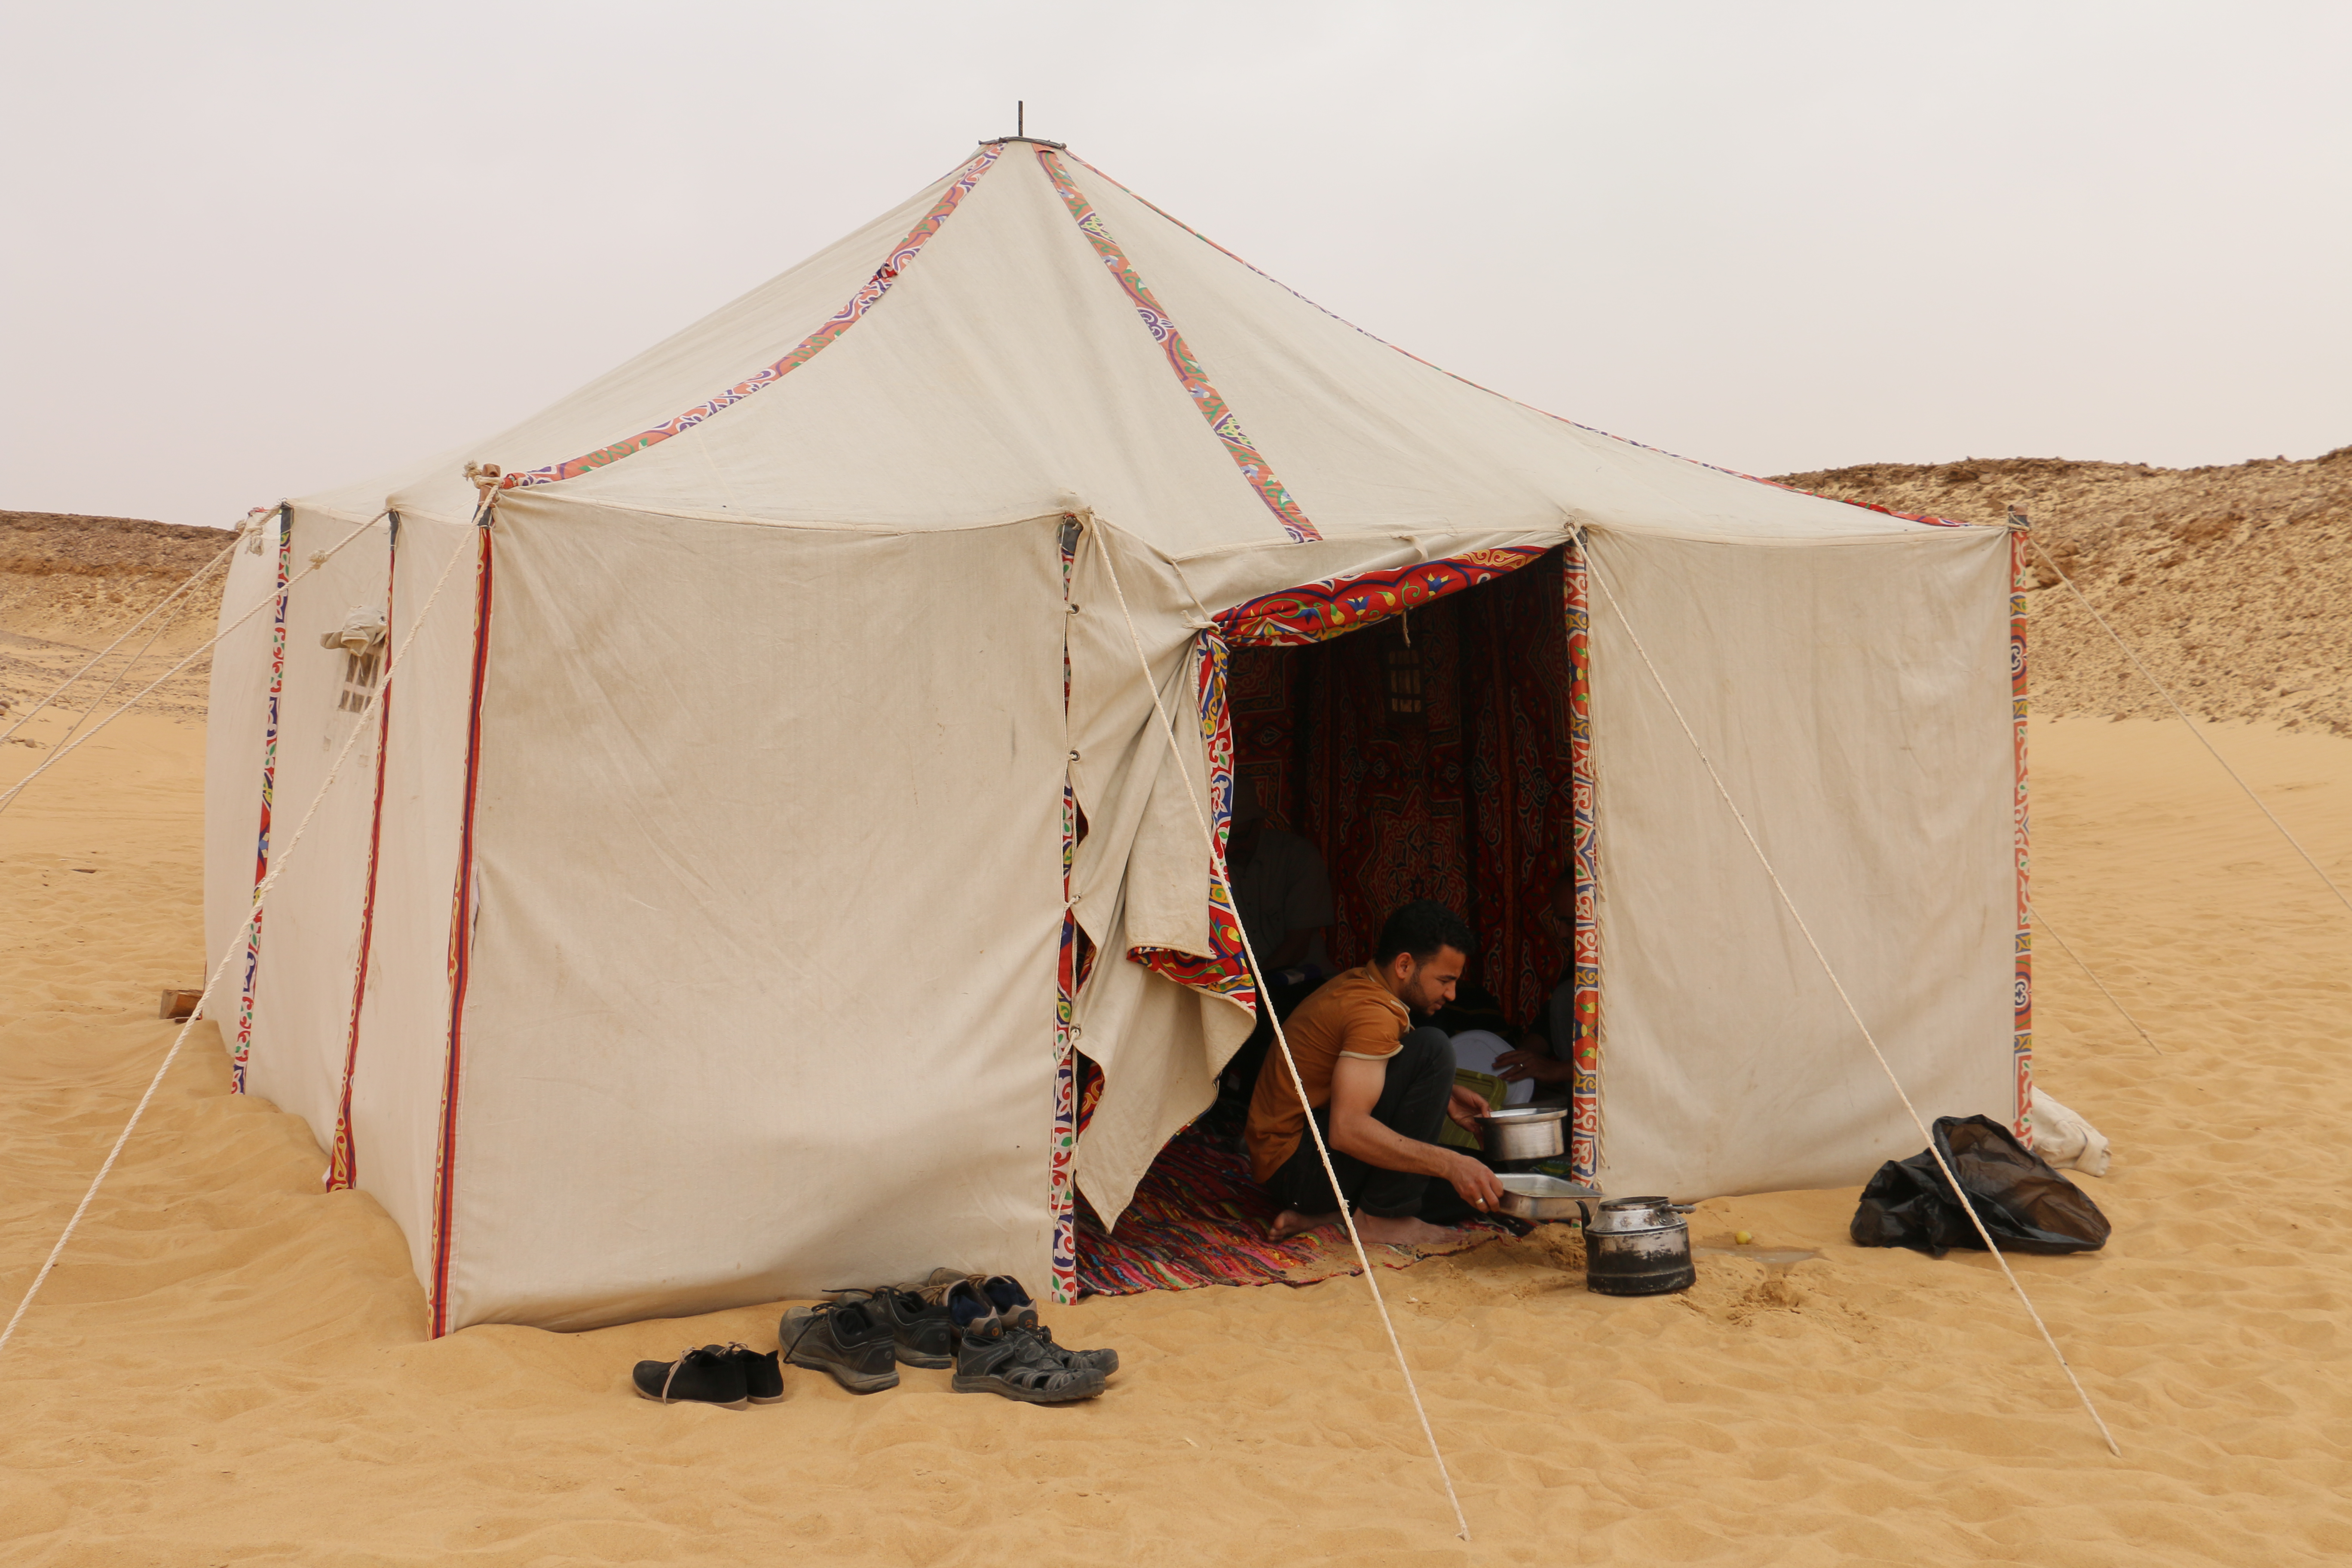 The vendors here in this old covered souk specialize in made-to-order Bedouin-style canvas tents like the one we stayed in when we visited the White Desert. & Tent-makersu0027 alley | Lorna of Arabia